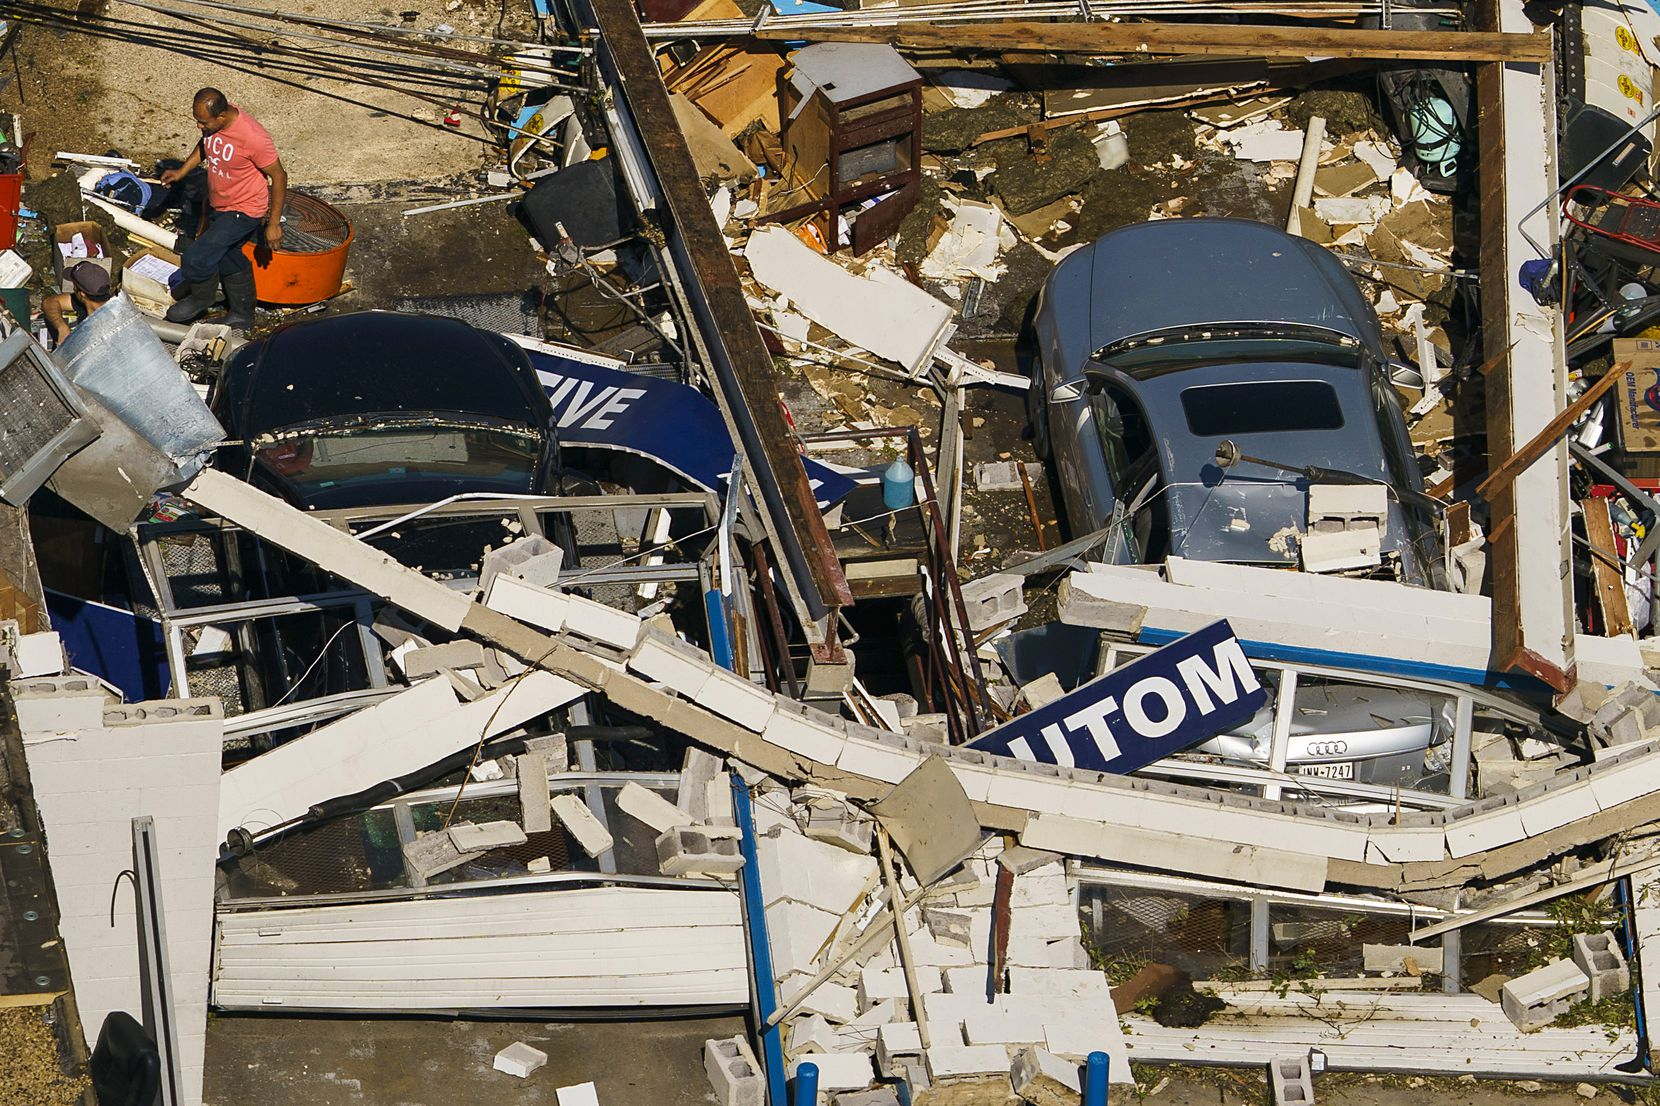 People walk amidst cars buried in the rubble of a destroyed auto repair shop on Northaven Road on Monday, Oct. 21, 2019, in Dallas.